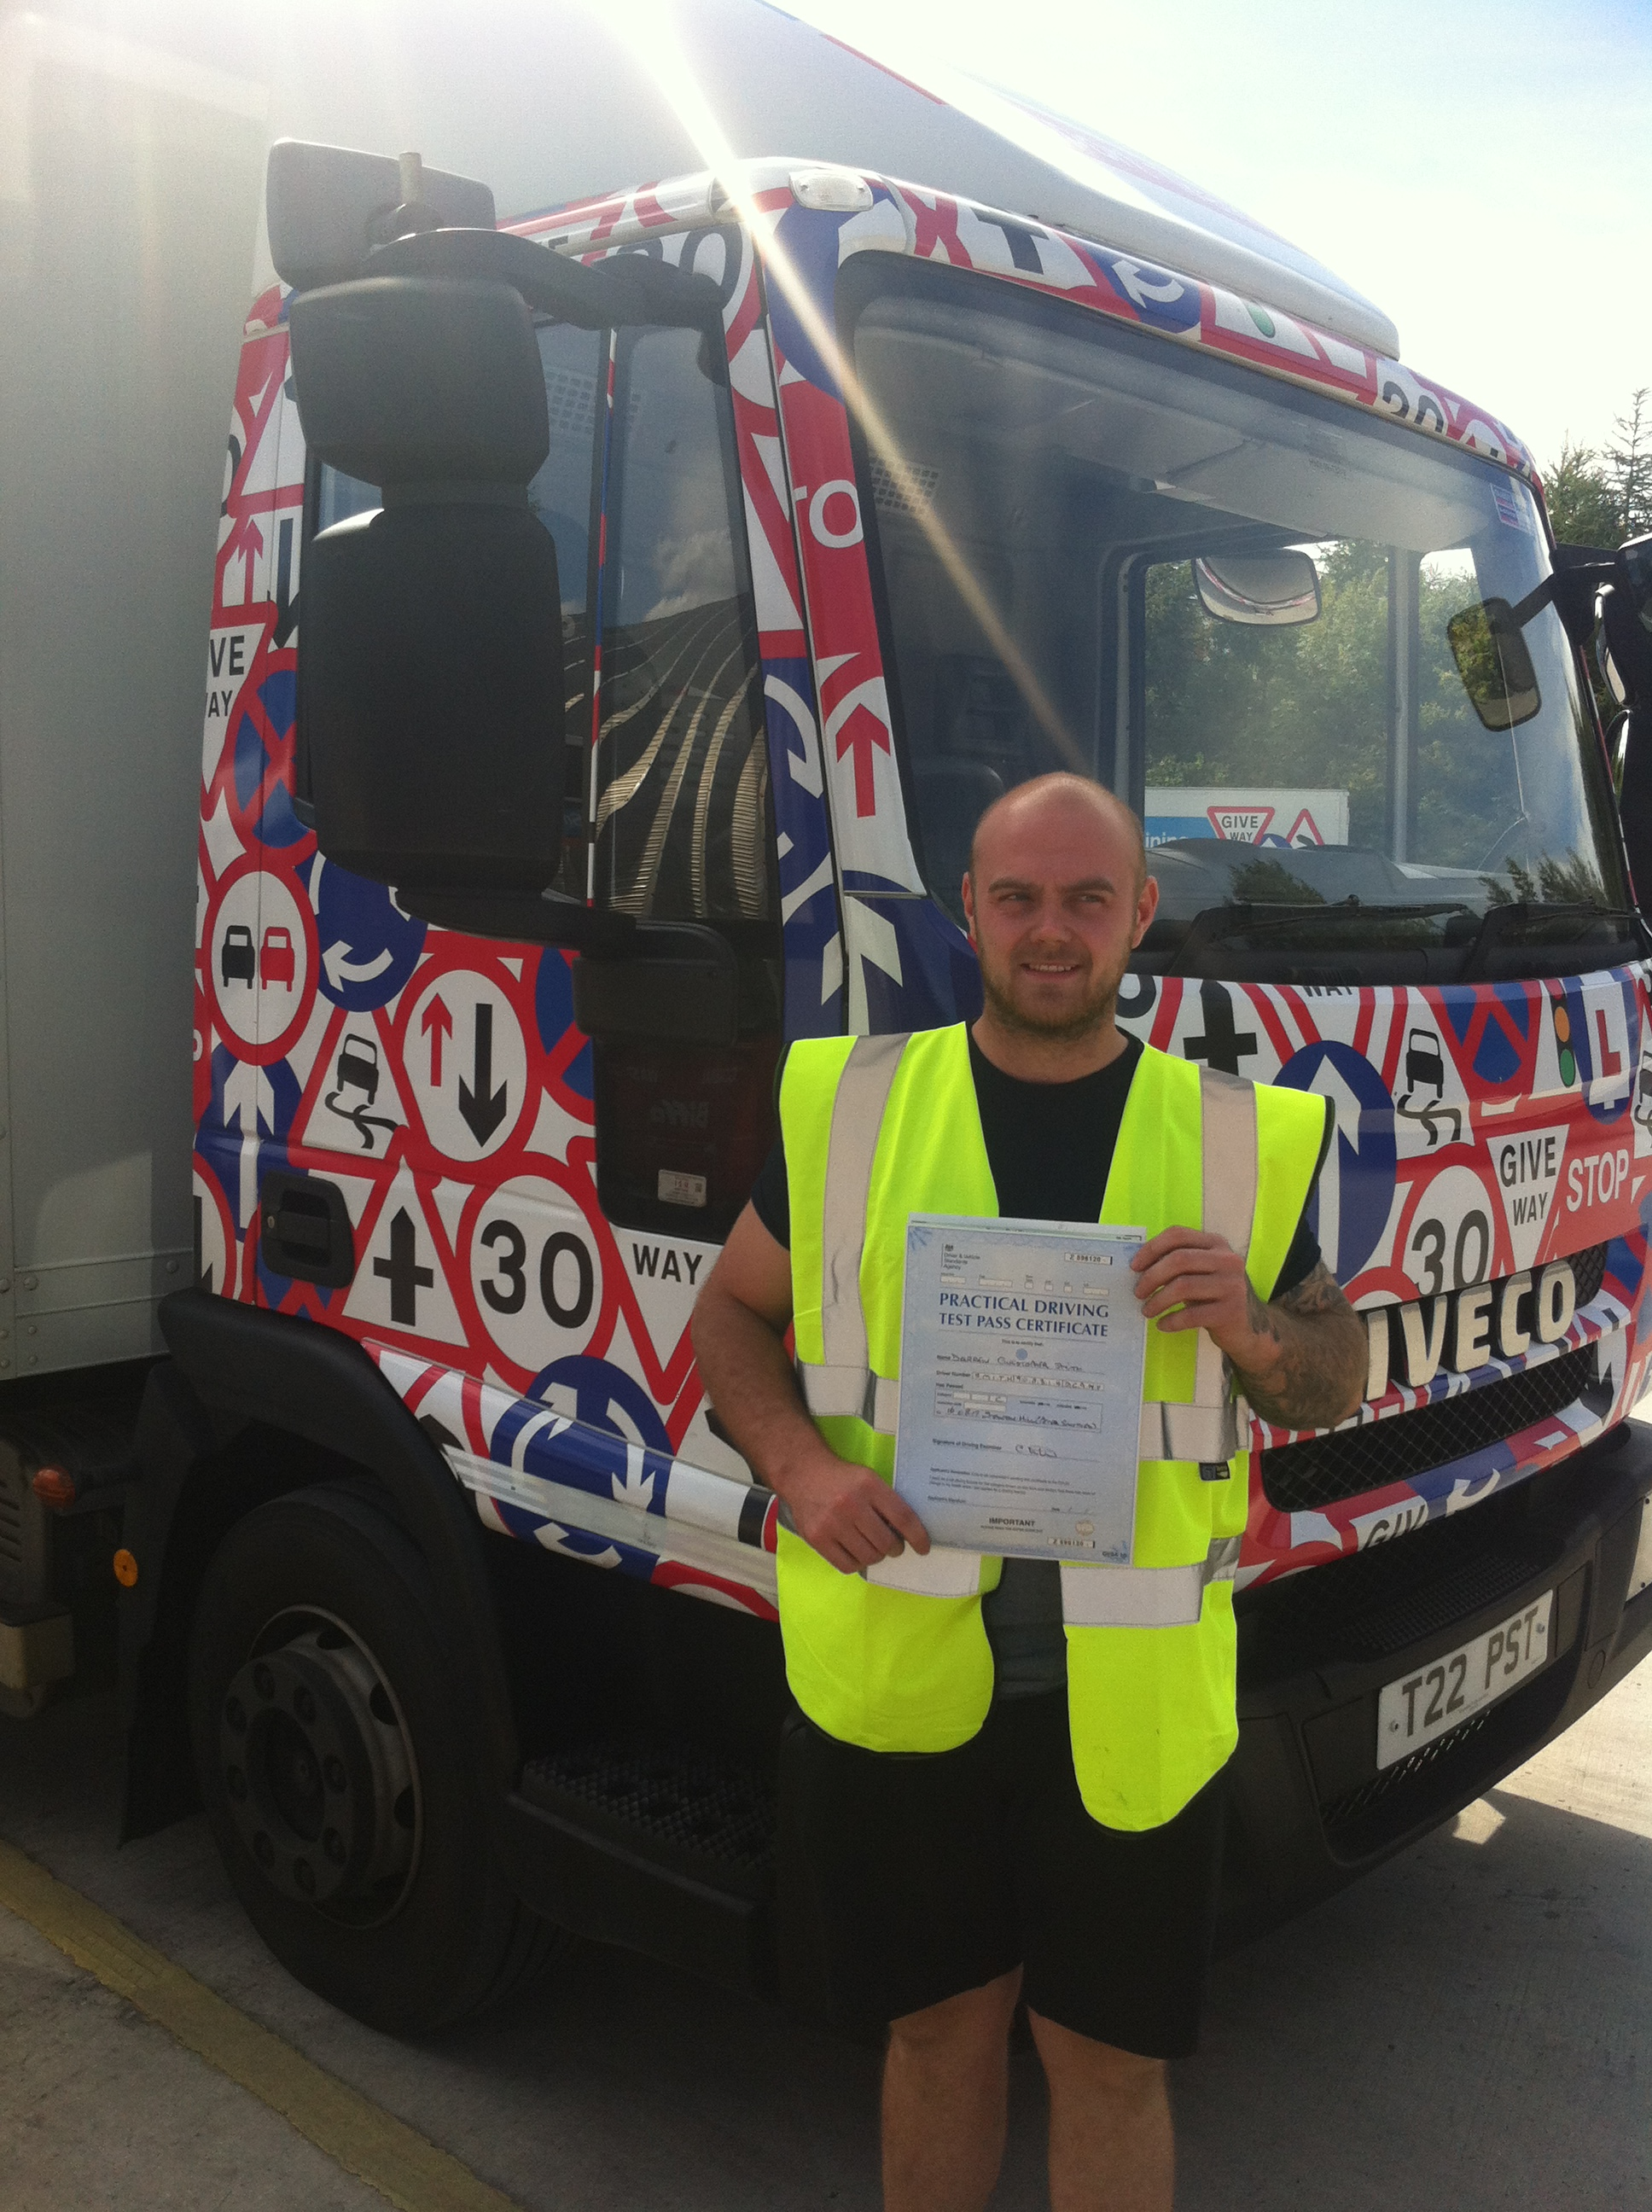 Darren Smith from Chesterfield PASSED HGV CLASS 2 with a CLEAN SHEET #Ipassedwithpstt